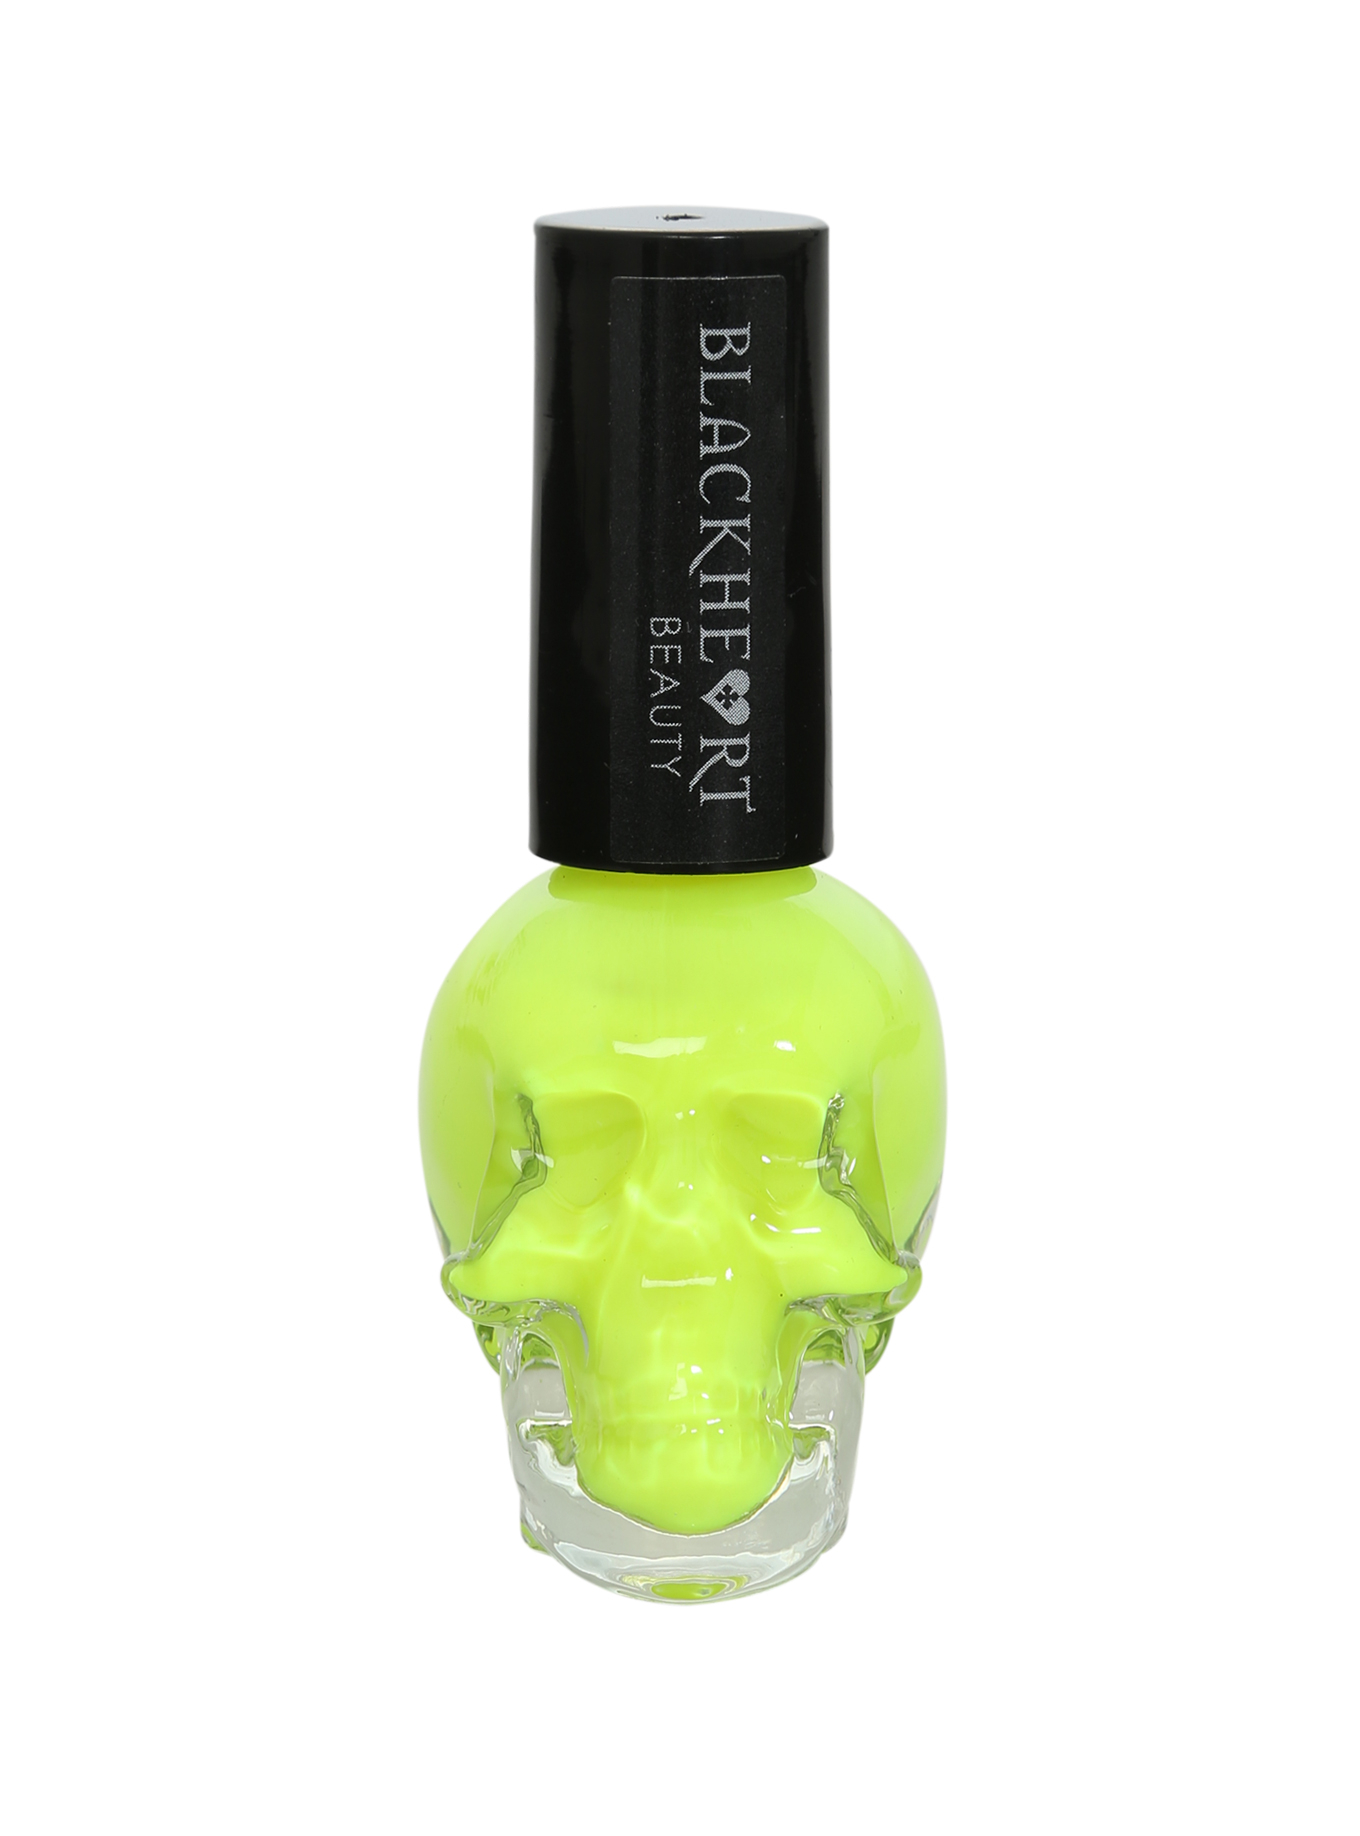 Blackheart Neon Yellow Nail Polish | Hot from Hot Topic